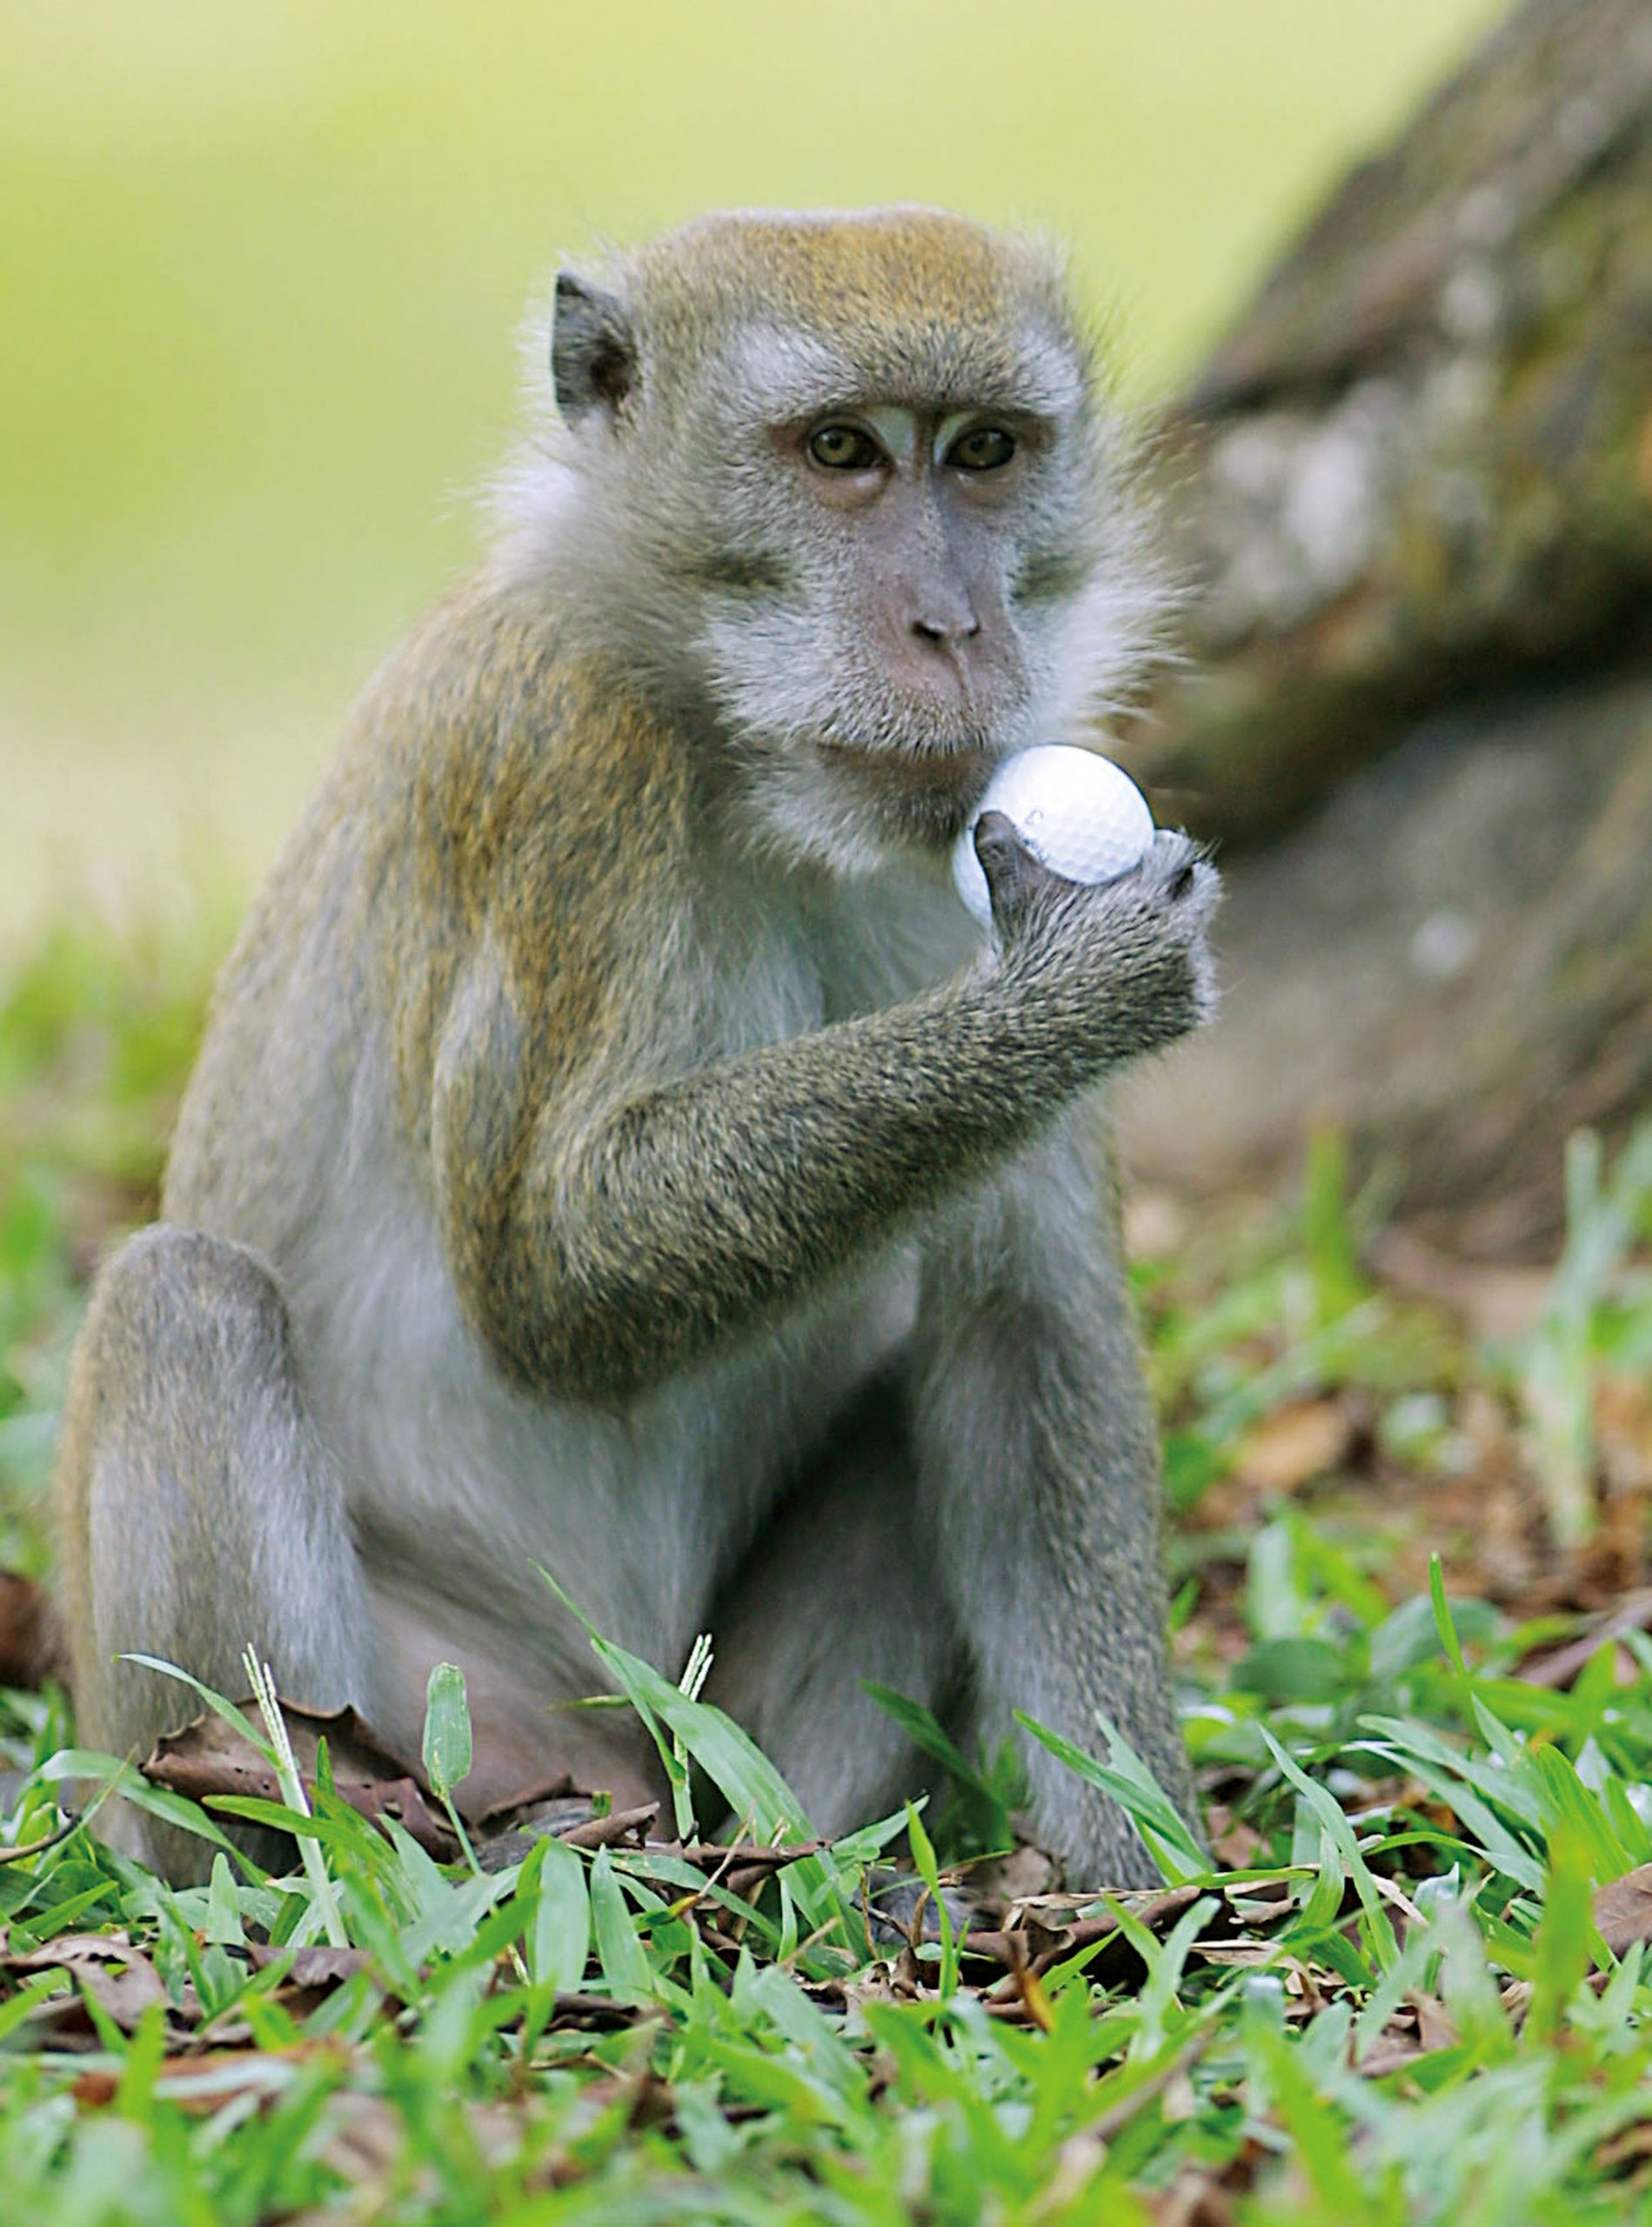 Monkey with golf ball